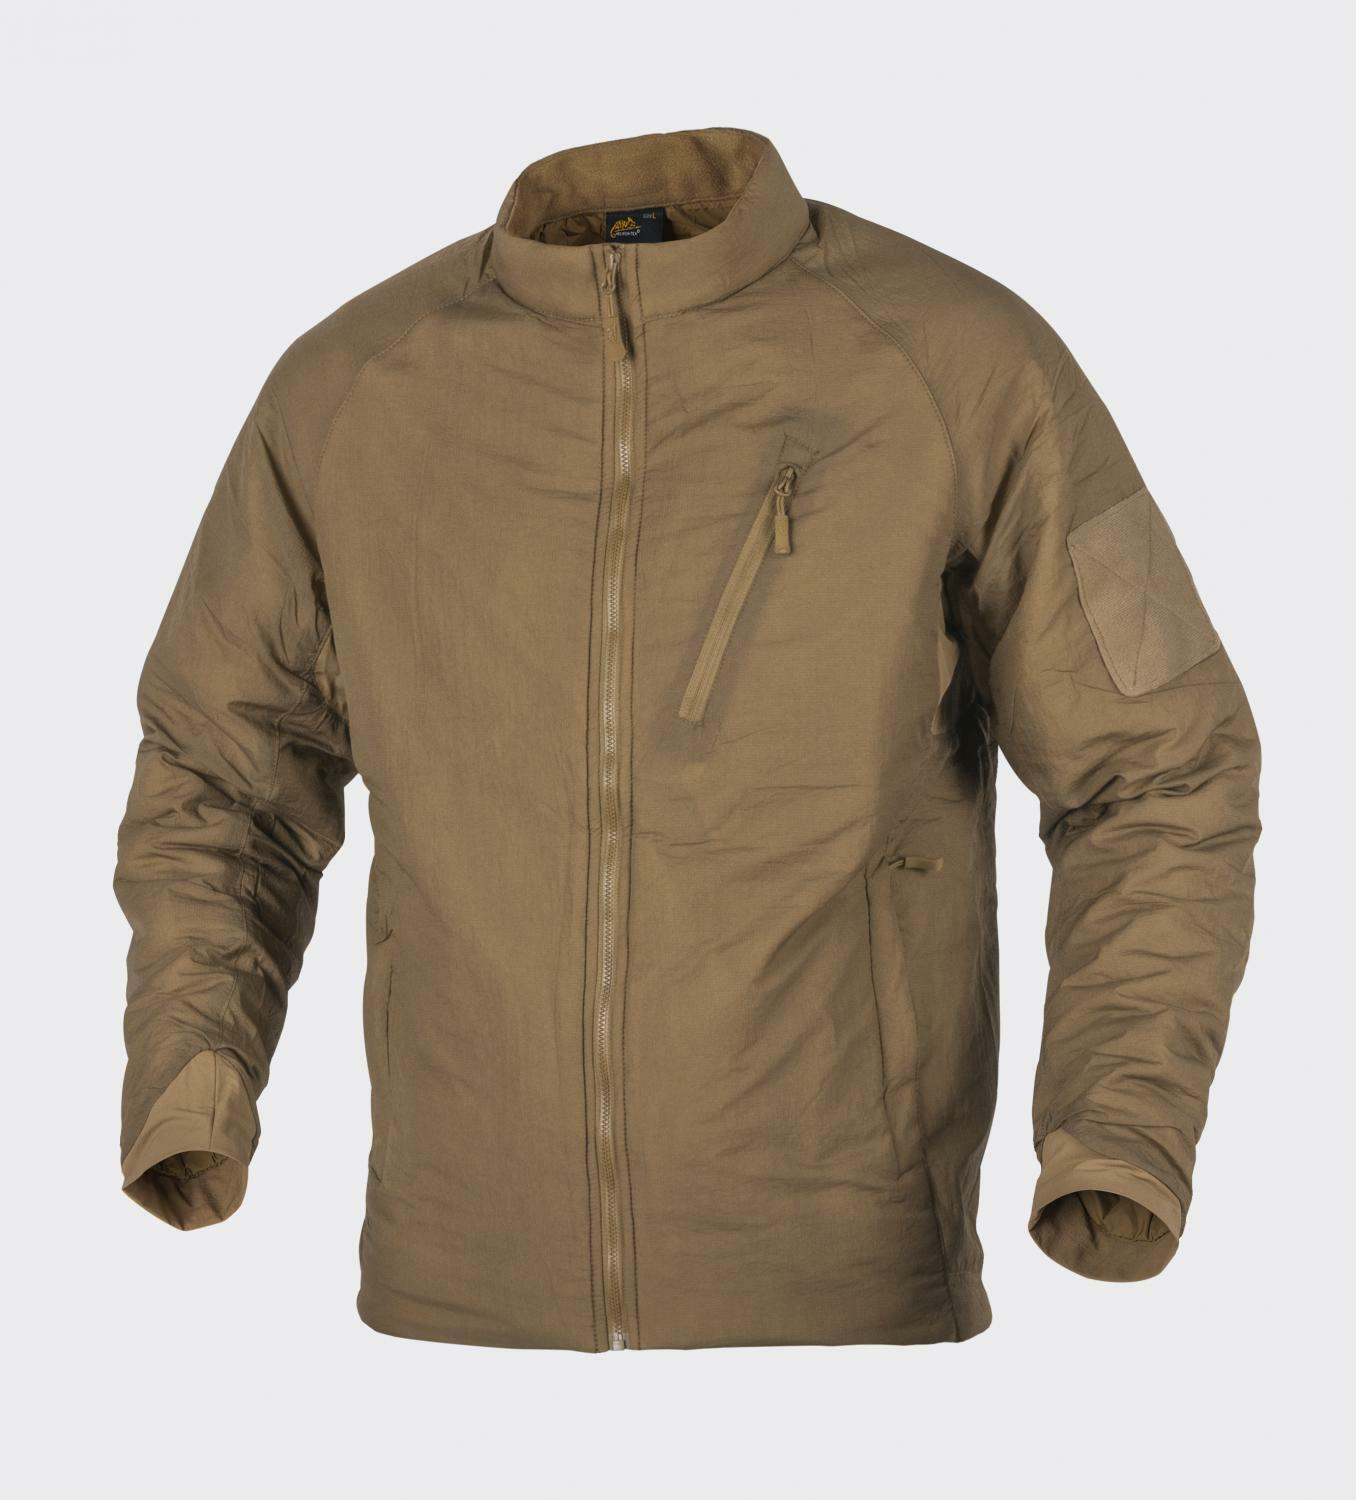 HELIKON tex wolfhound Jacket climashield apex outdoor chaqueta coyote s Small